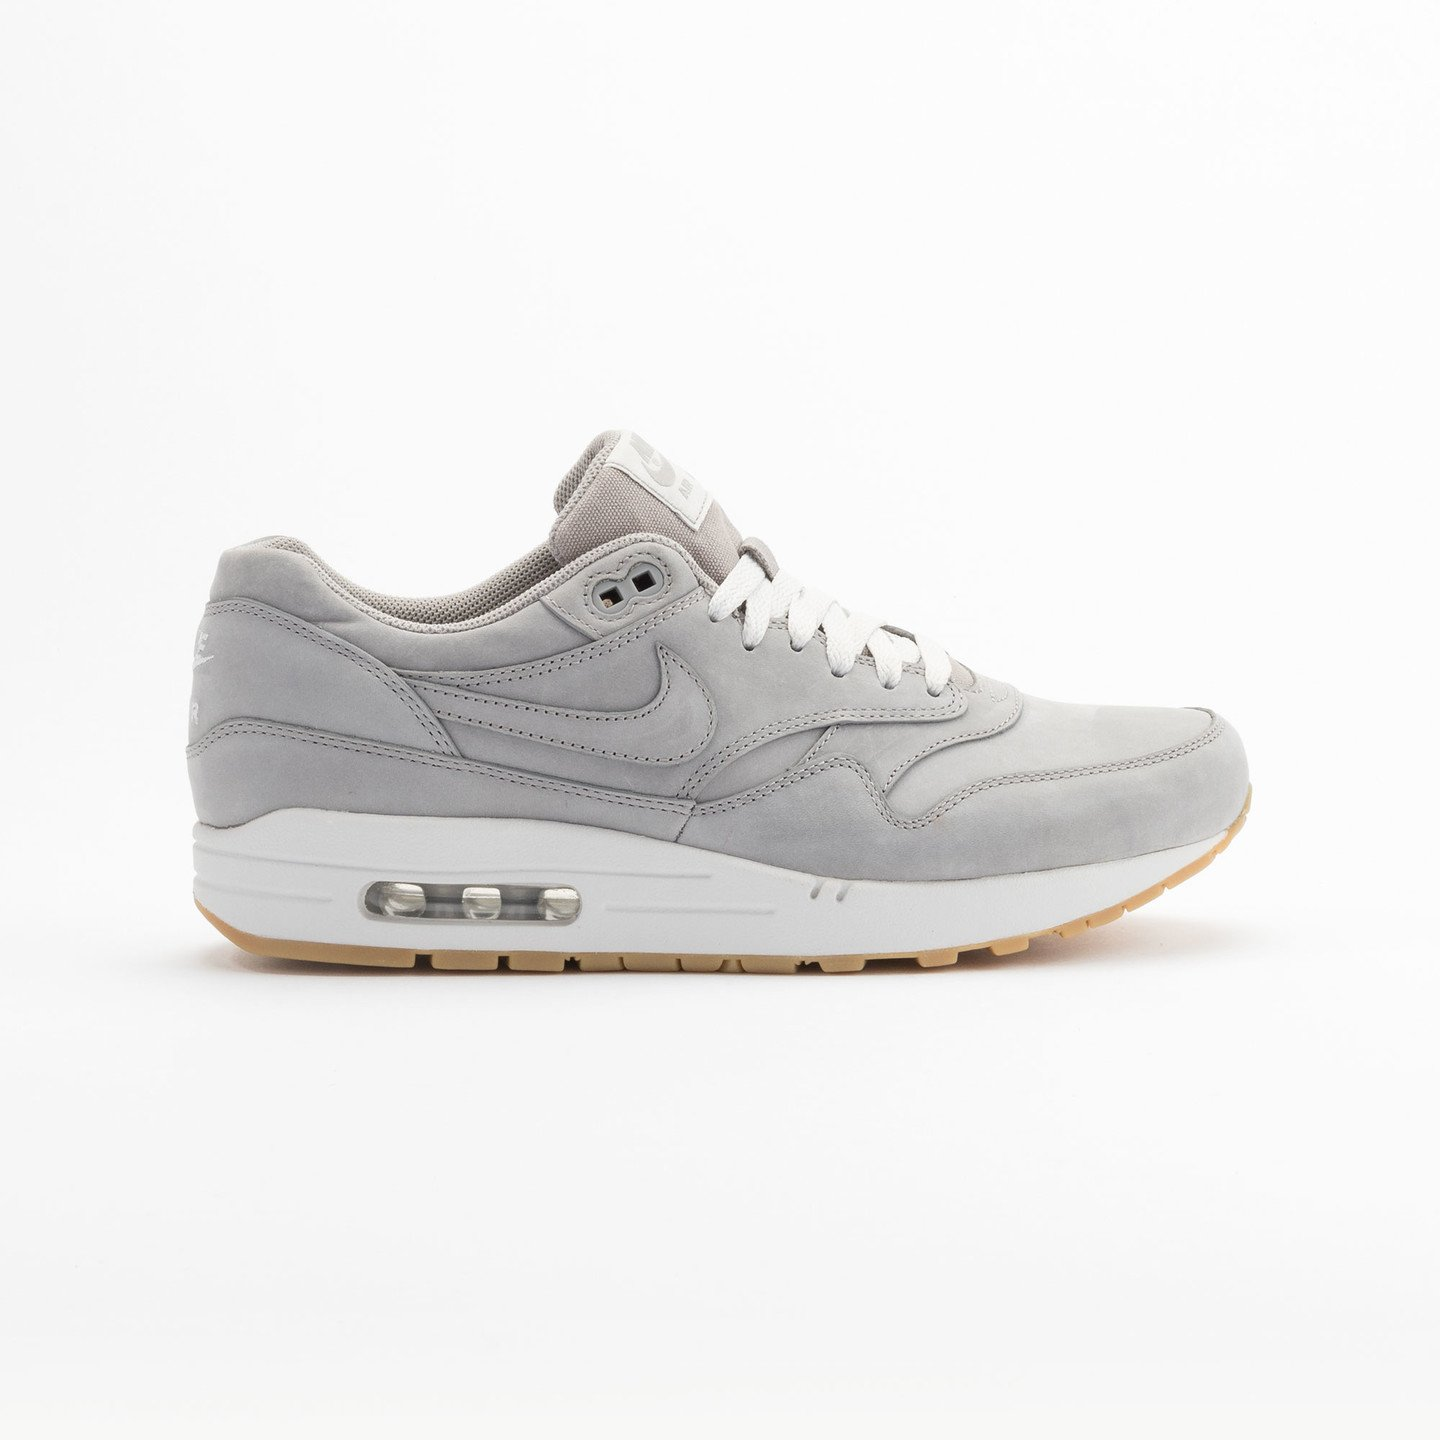 Nike Air Max Leather 1 Premium Medium Grey 705282-005-43